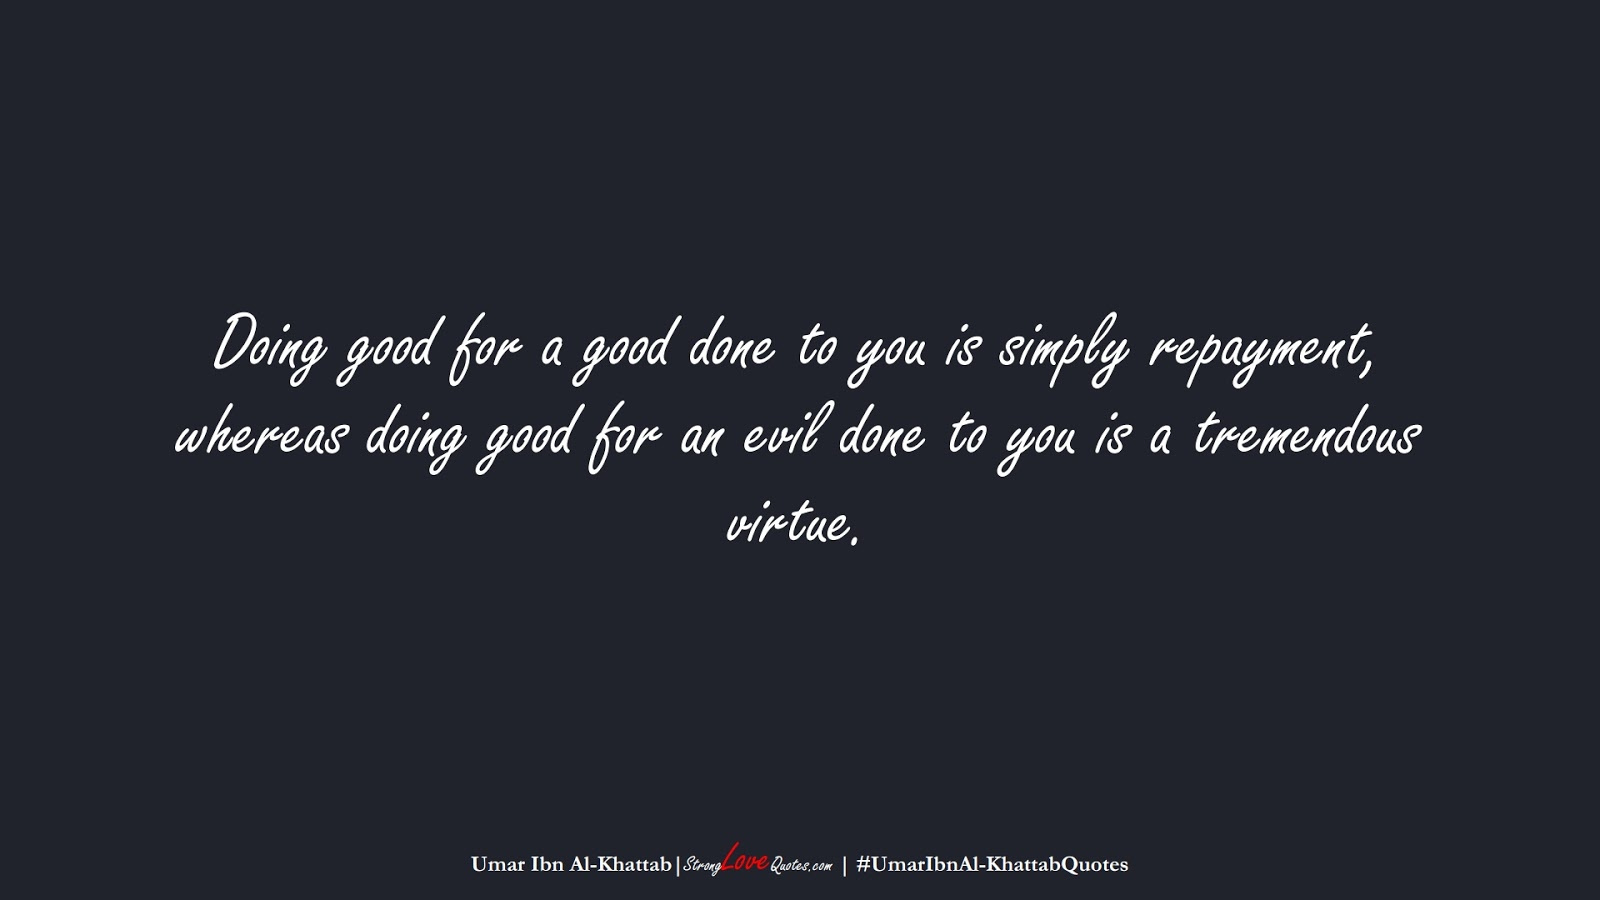 Doing good for a good done to you is simply repayment, whereas doing good for an evil done to you is a tremendous virtue. (Umar Ibn Al-Khattab);  #UmarIbnAl-KhattabQuotes